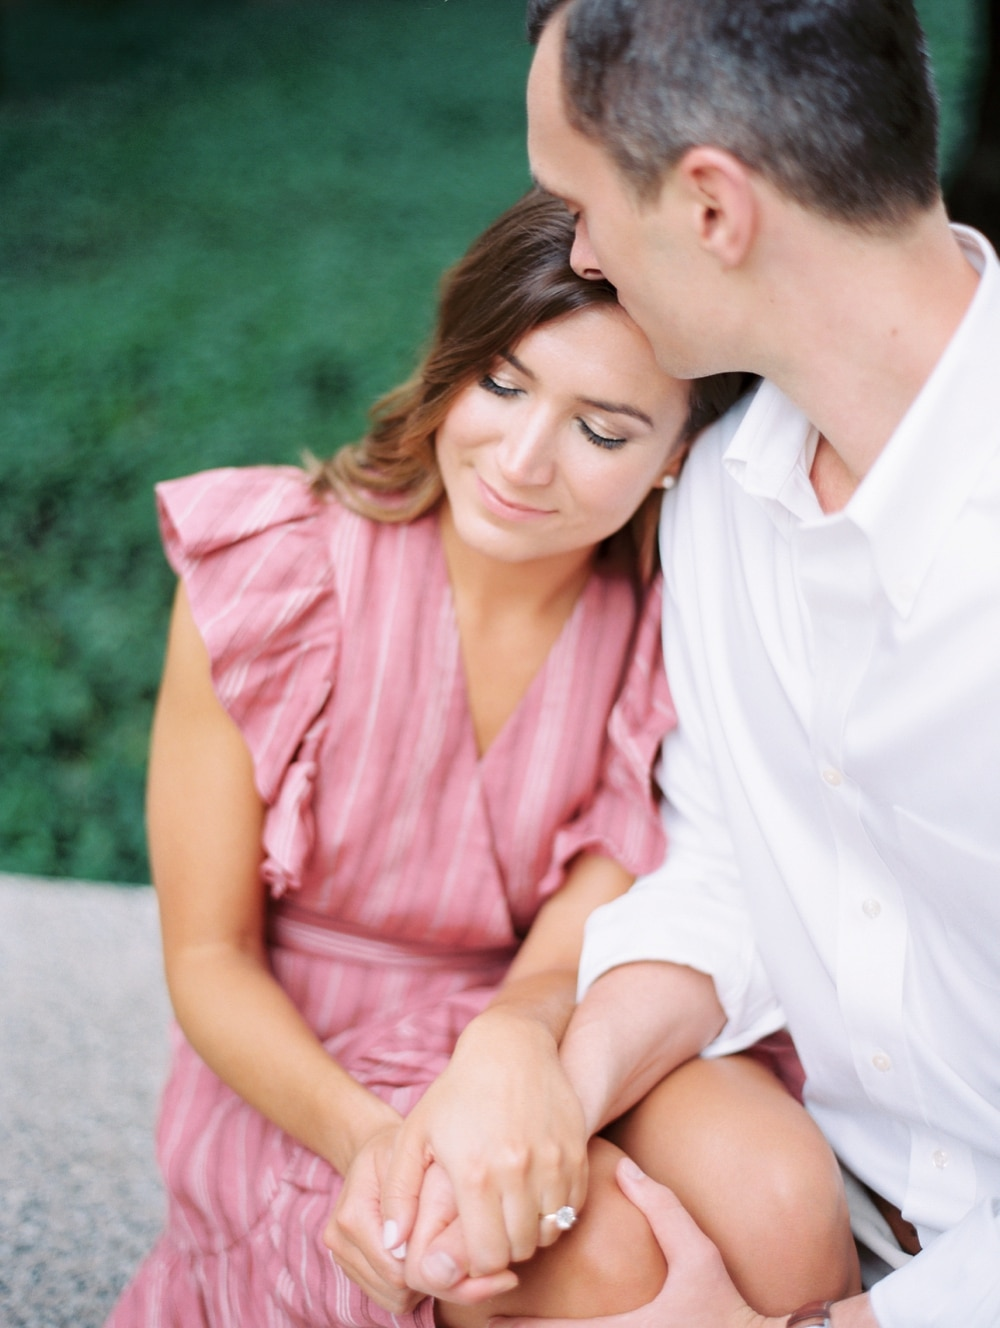 Kristin-La-Voie-Photography-chicago-art-institute-engagement-wedding-photos-34